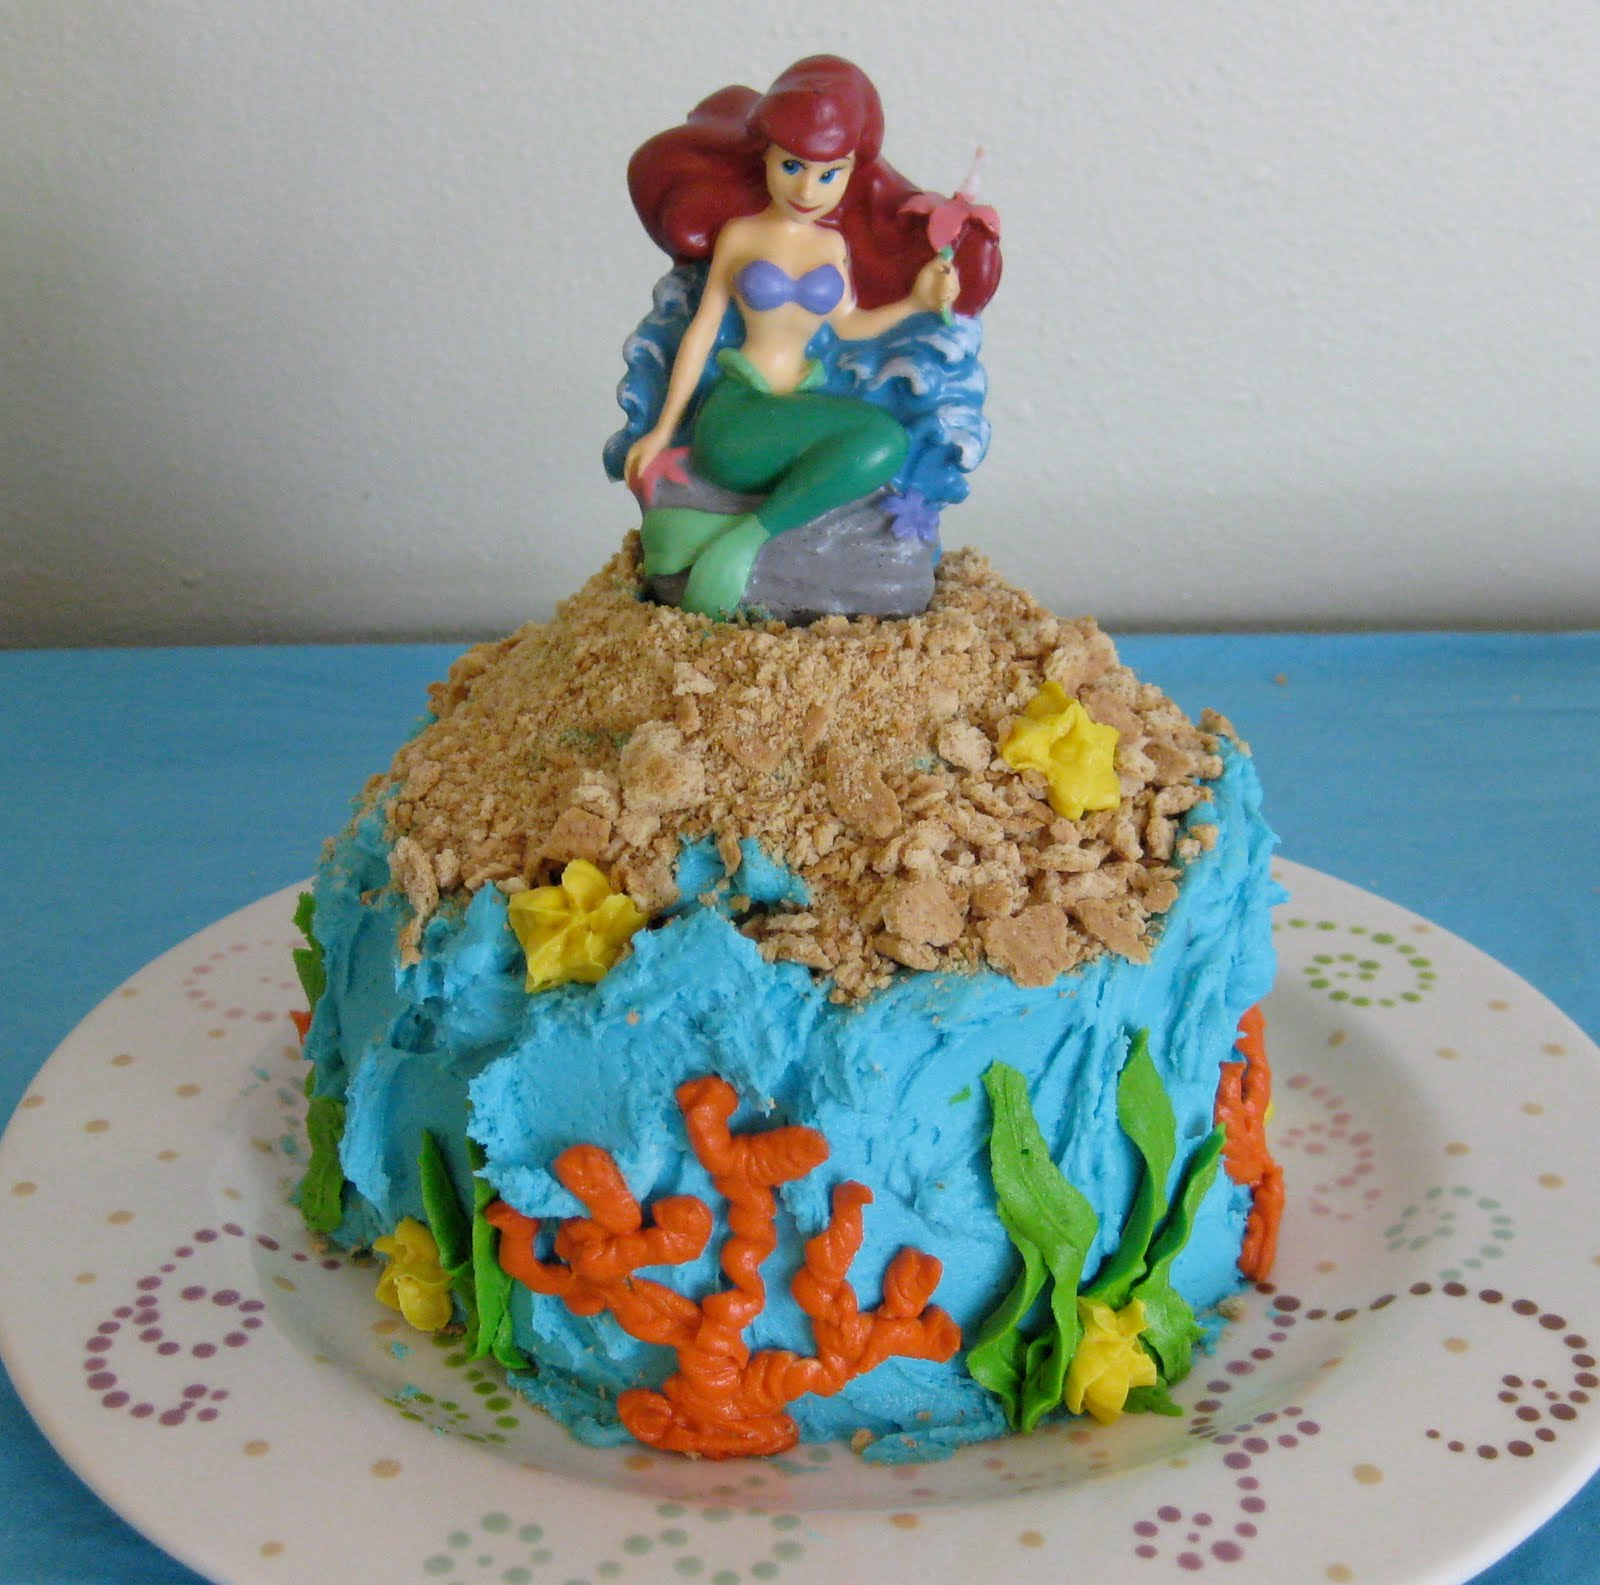 Cake With Cupcake Recipe : Stuffed Cakes: Mermaid Cake & Cupcakes